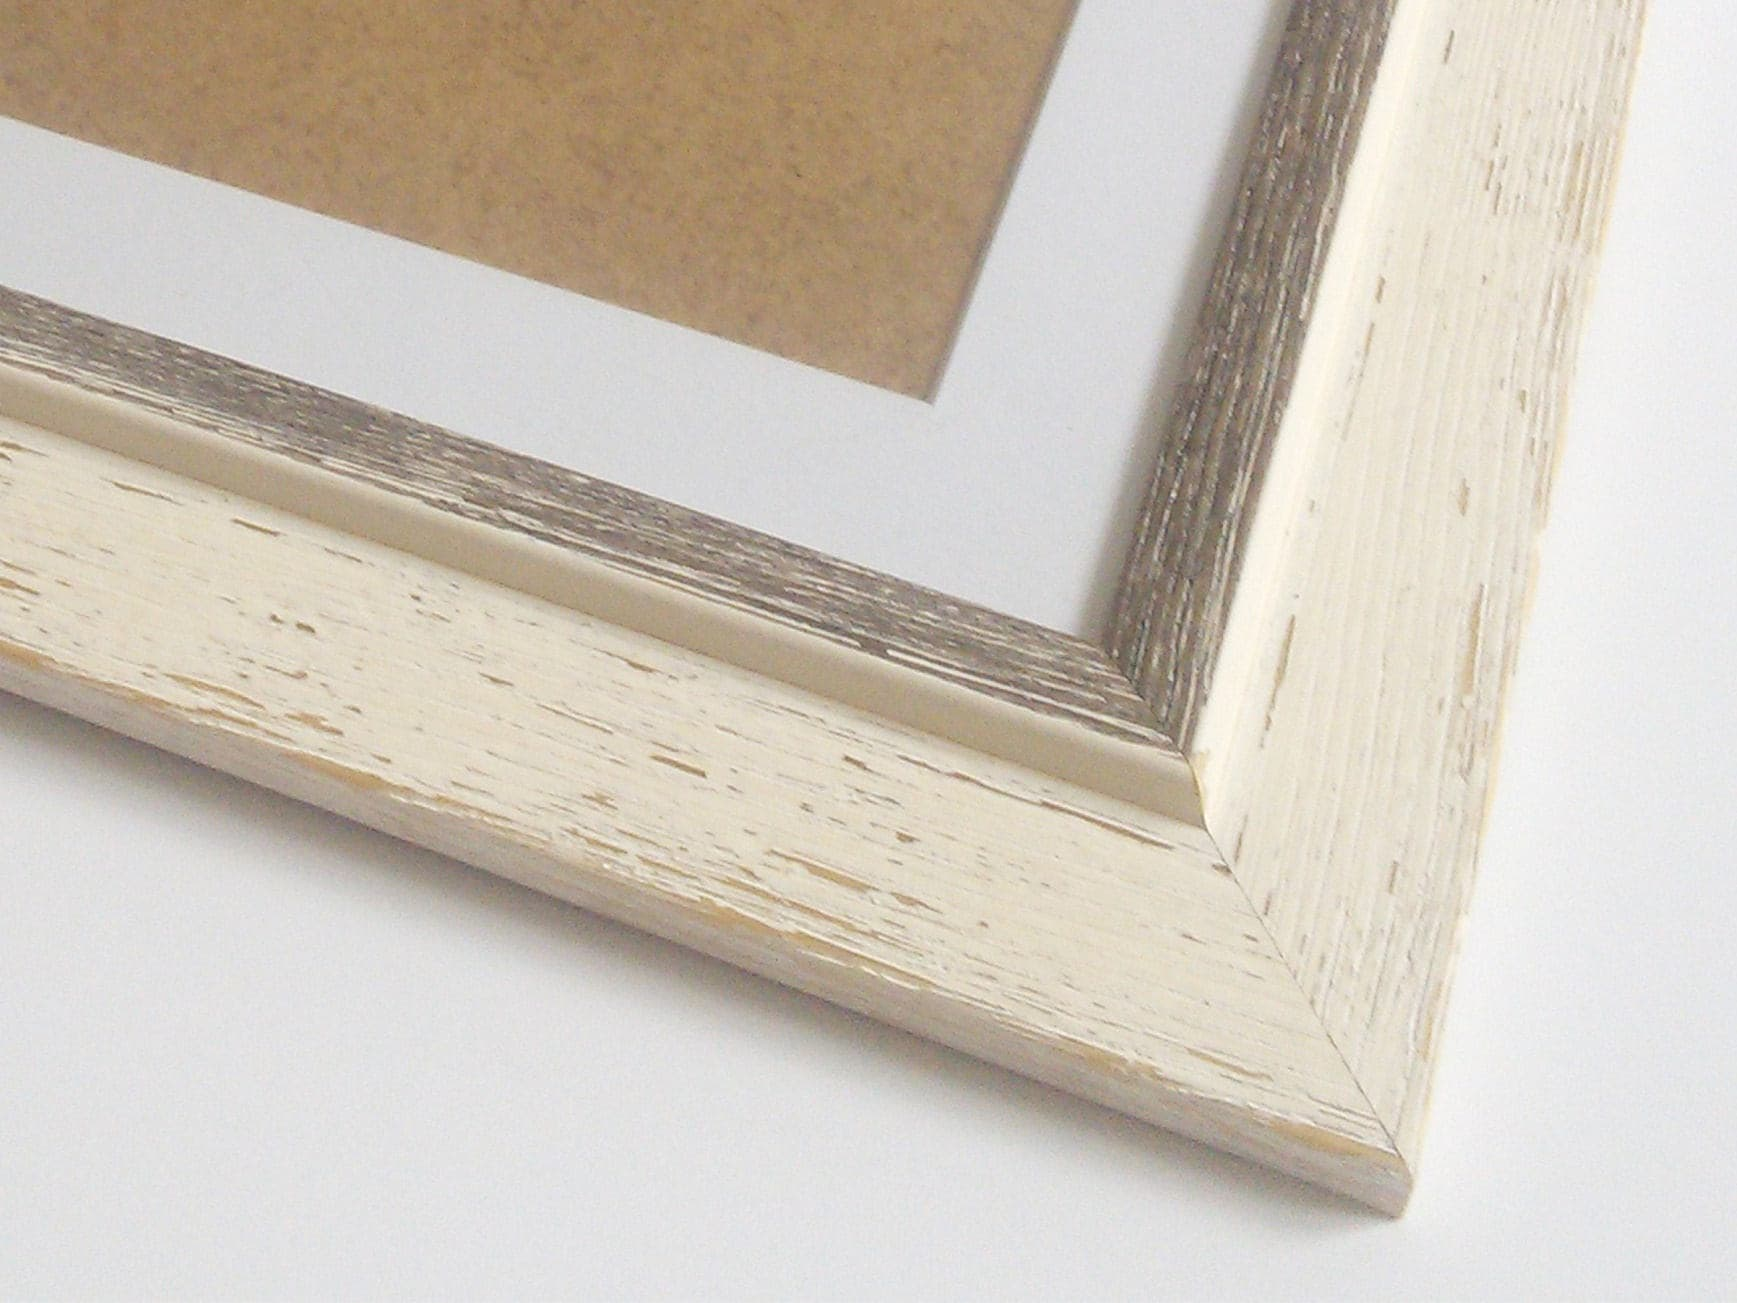 Distressed frame picture frame 8x8\